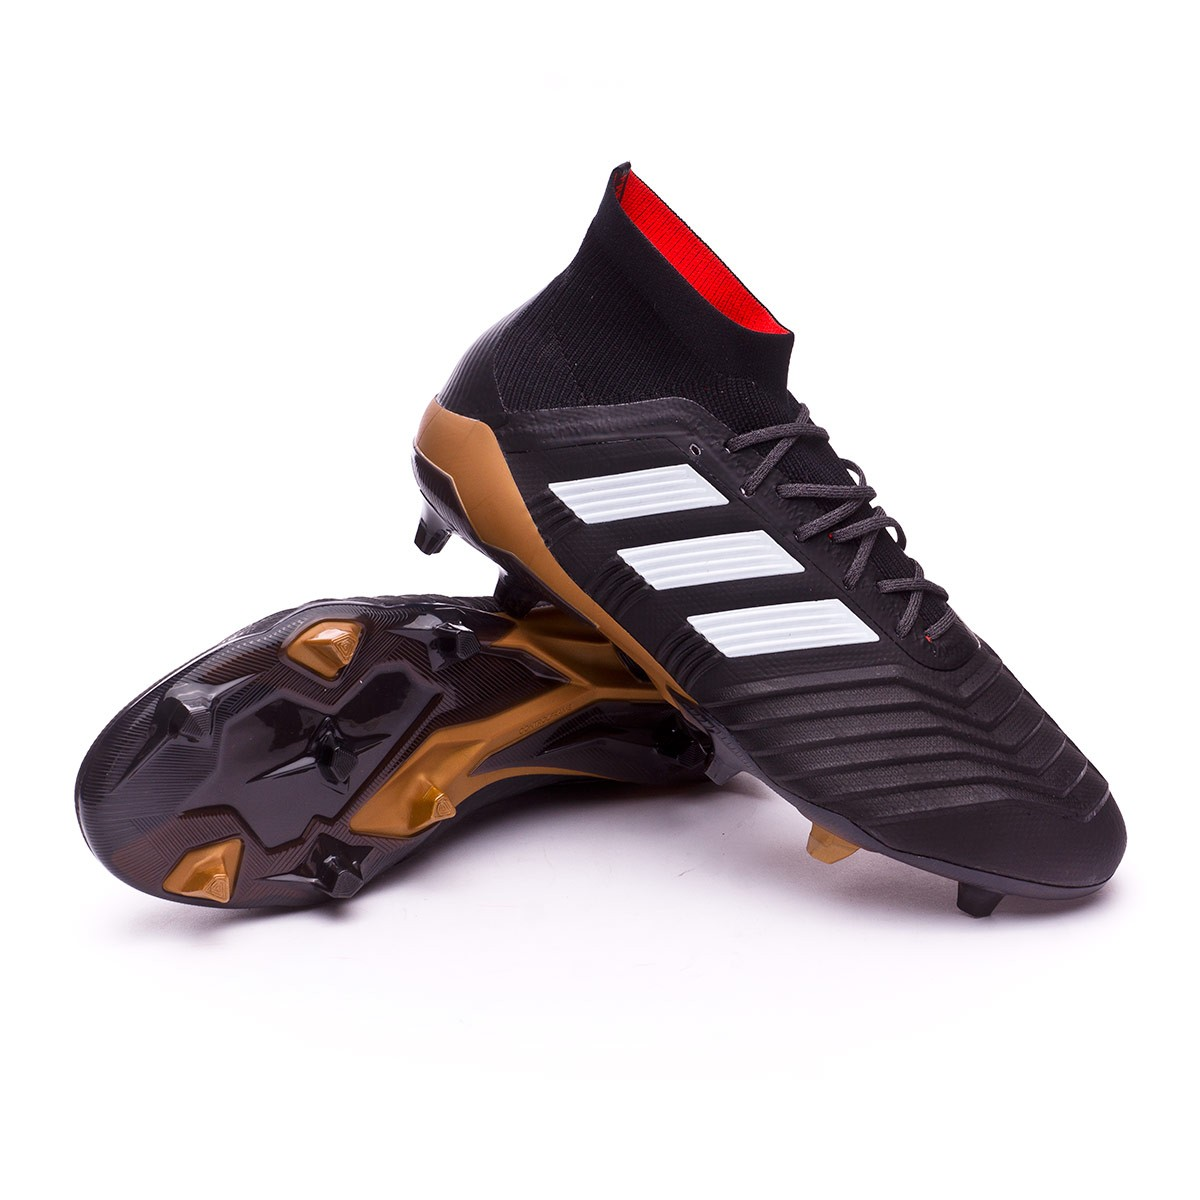 34b565a30ce6 ... official boot adidas predator 18.1 fg core black white gold metallic  solar b7ead ea986